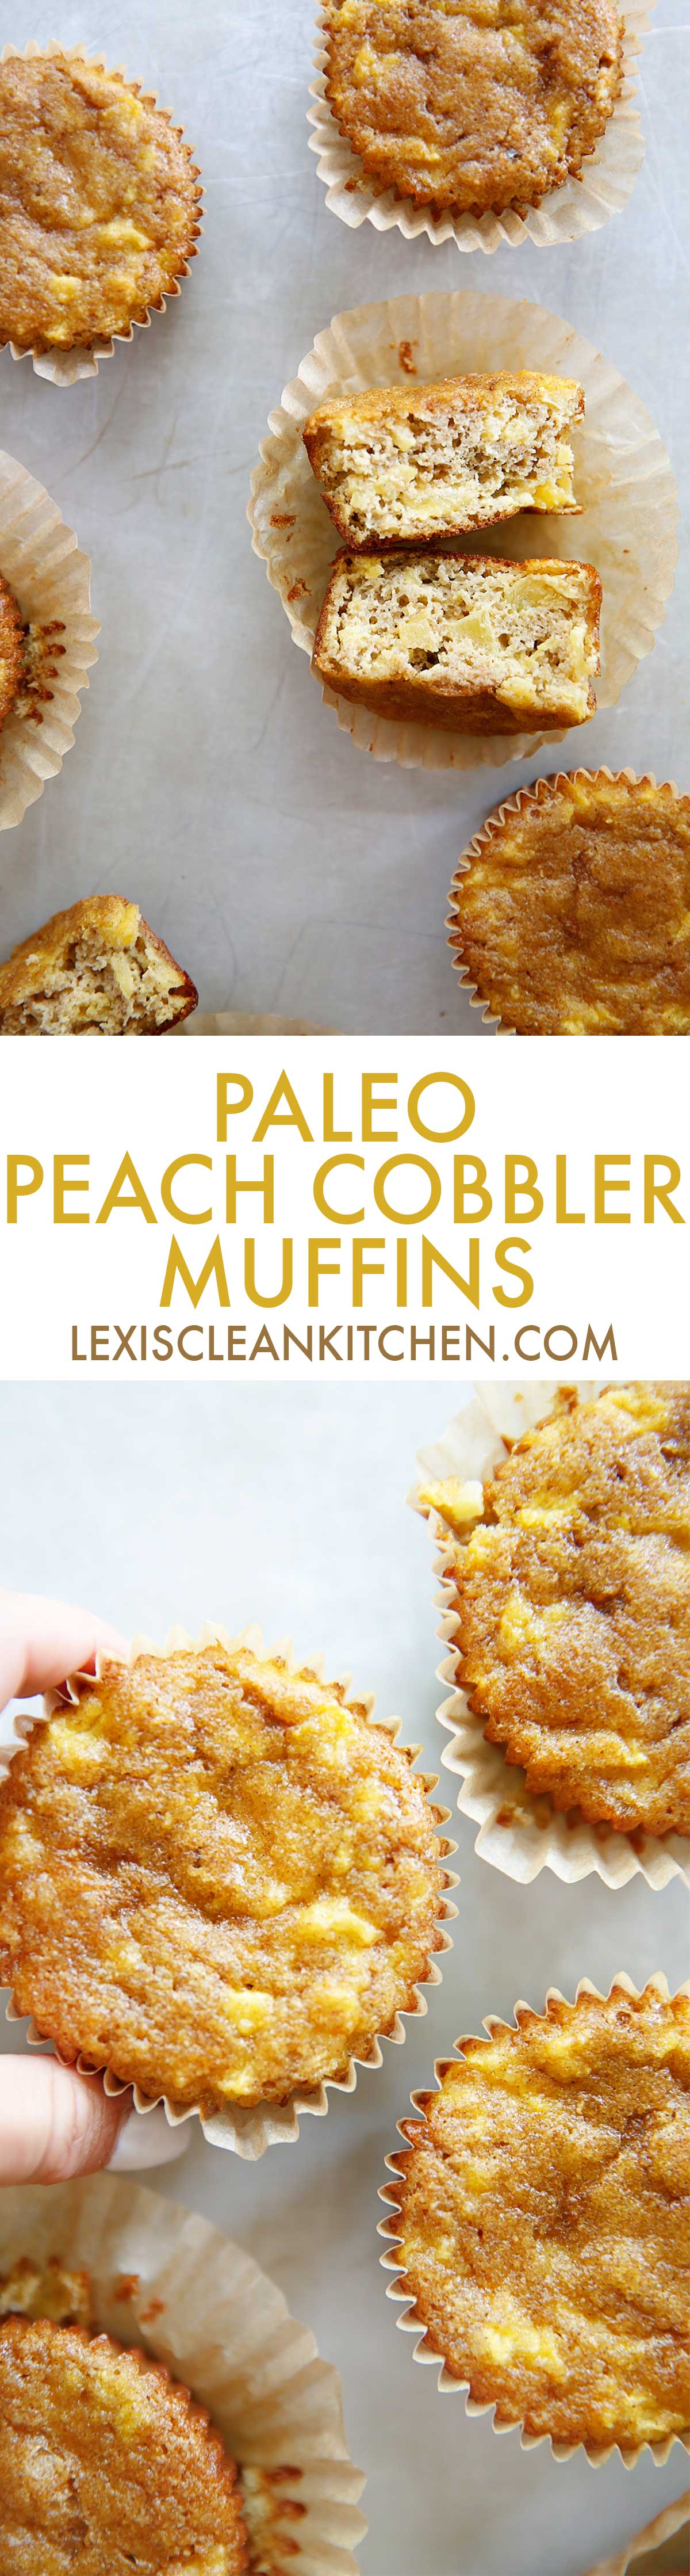 Peach Cobbler Muffins | Lexi's Clean Kitchen